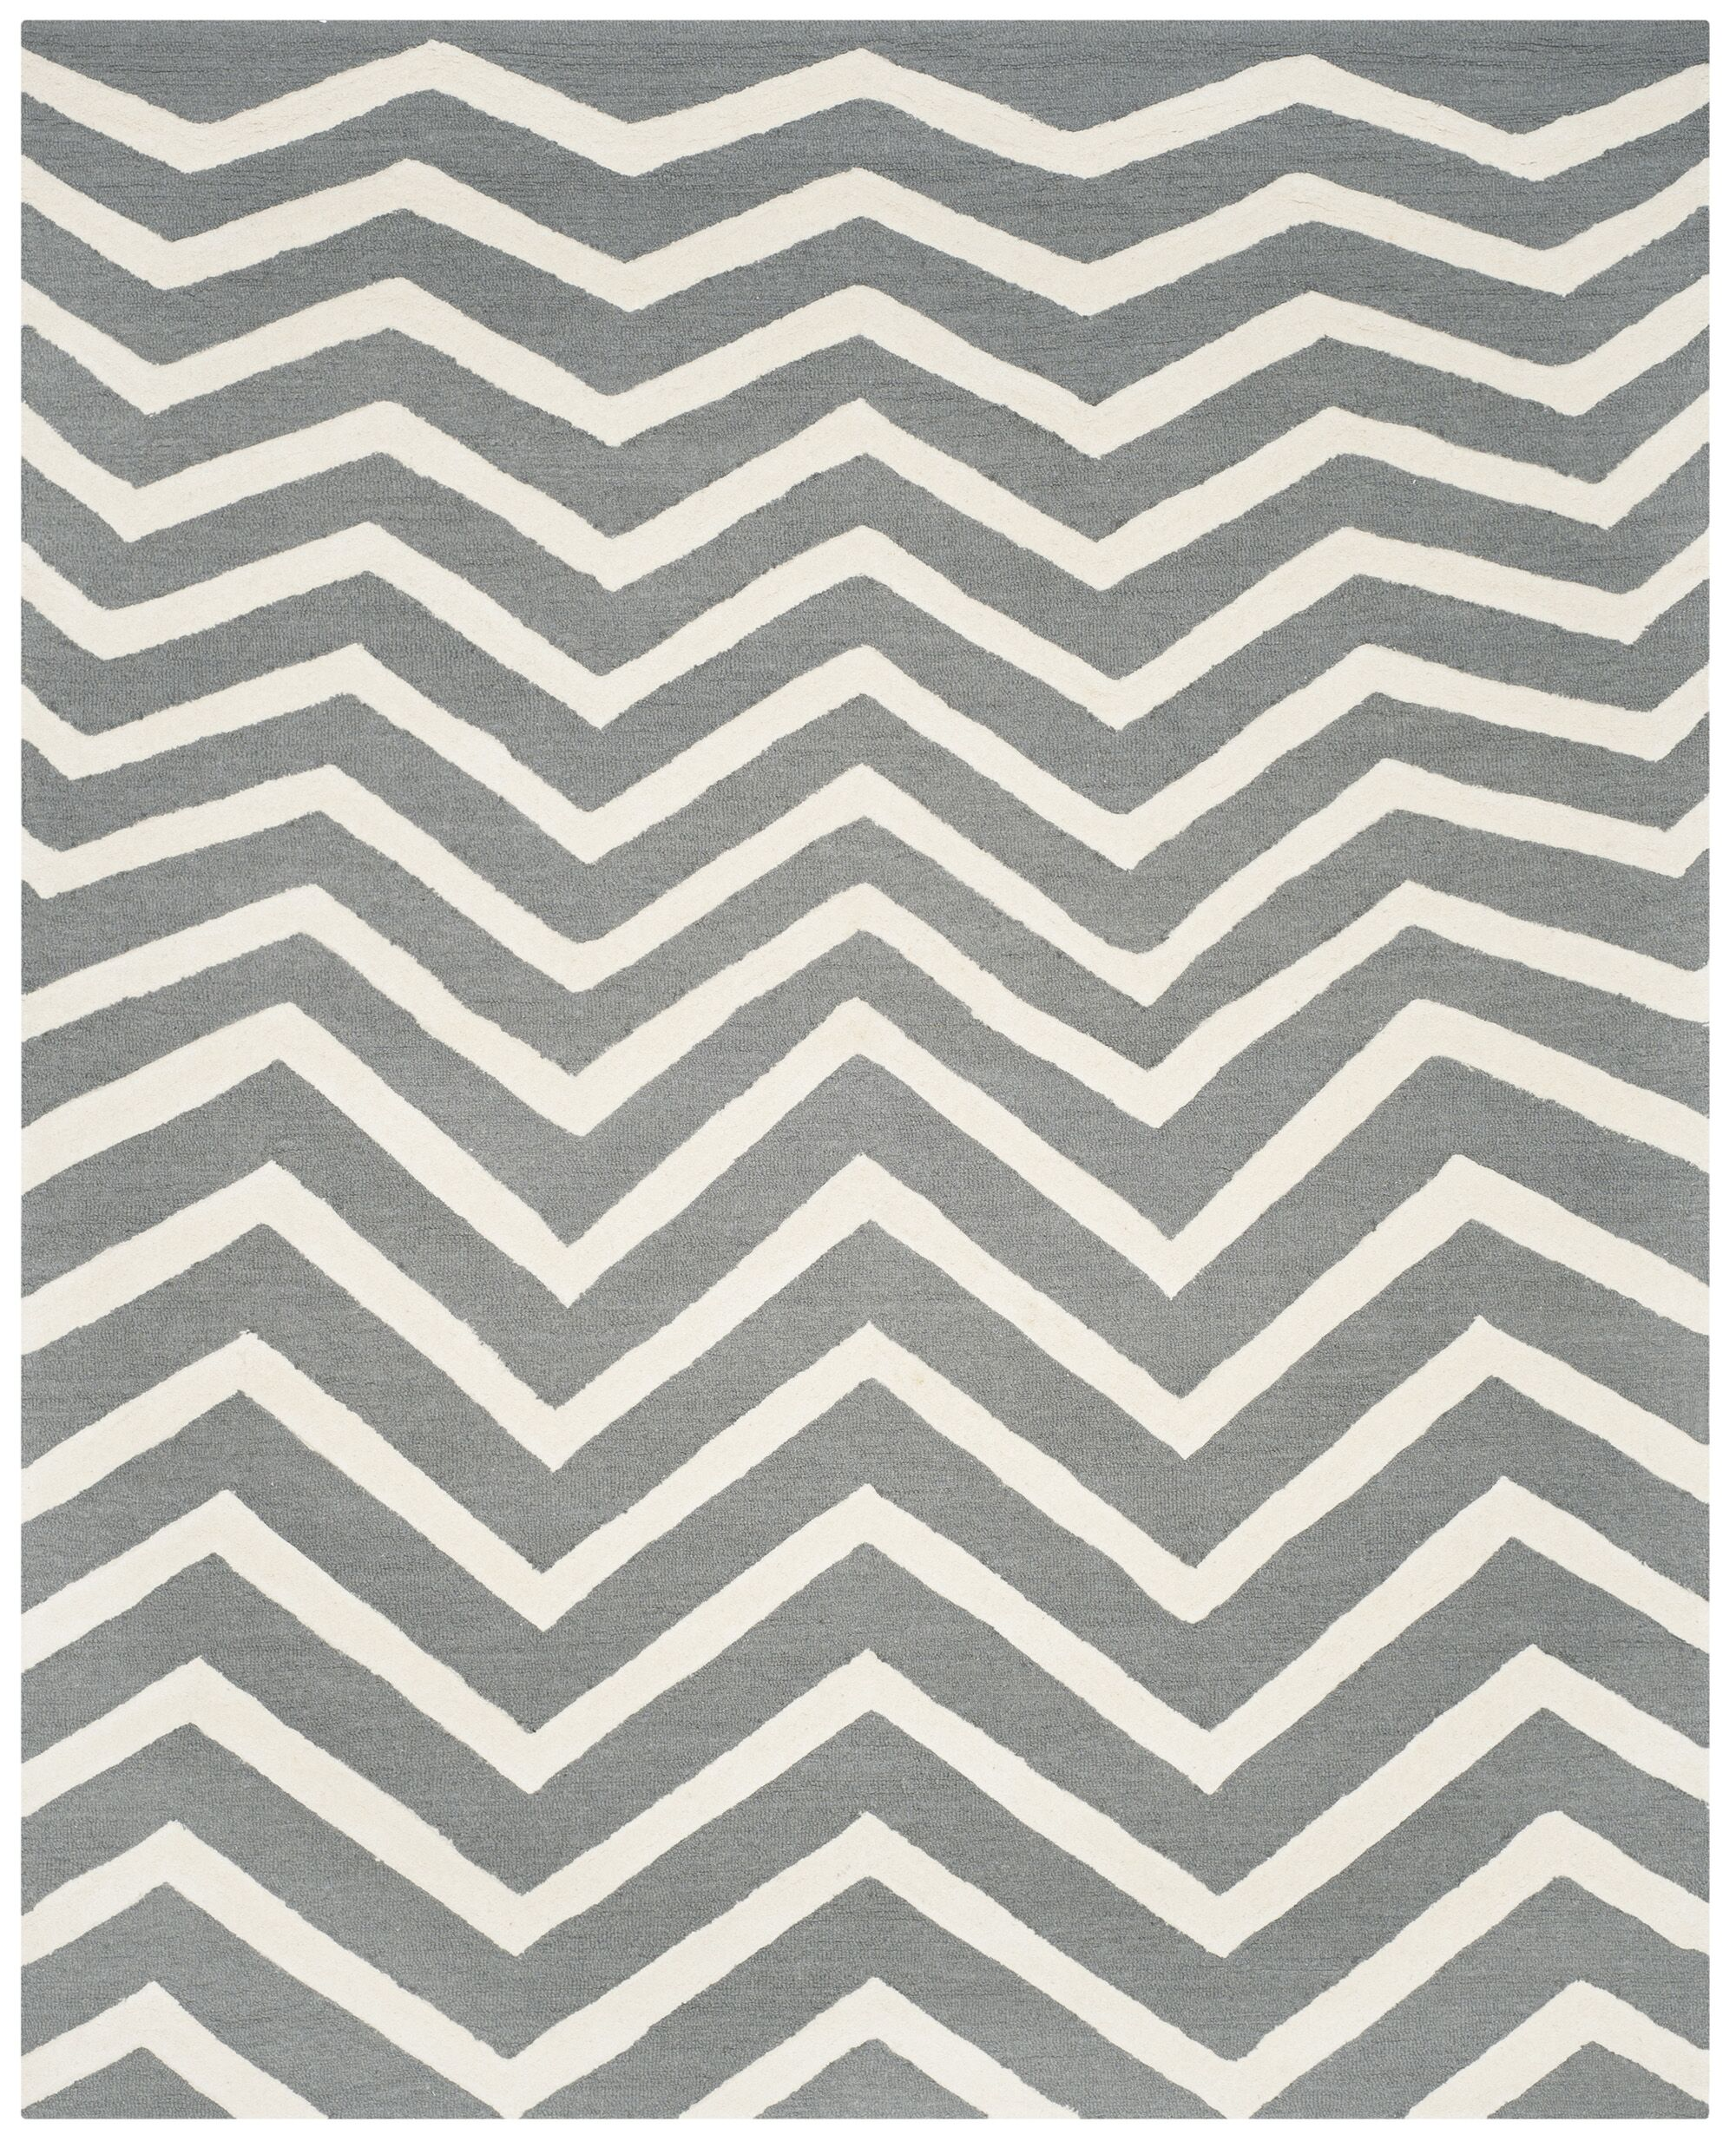 Charlenne Dark Gray Area Rug Rug Size: Rectangle 8' x 10'